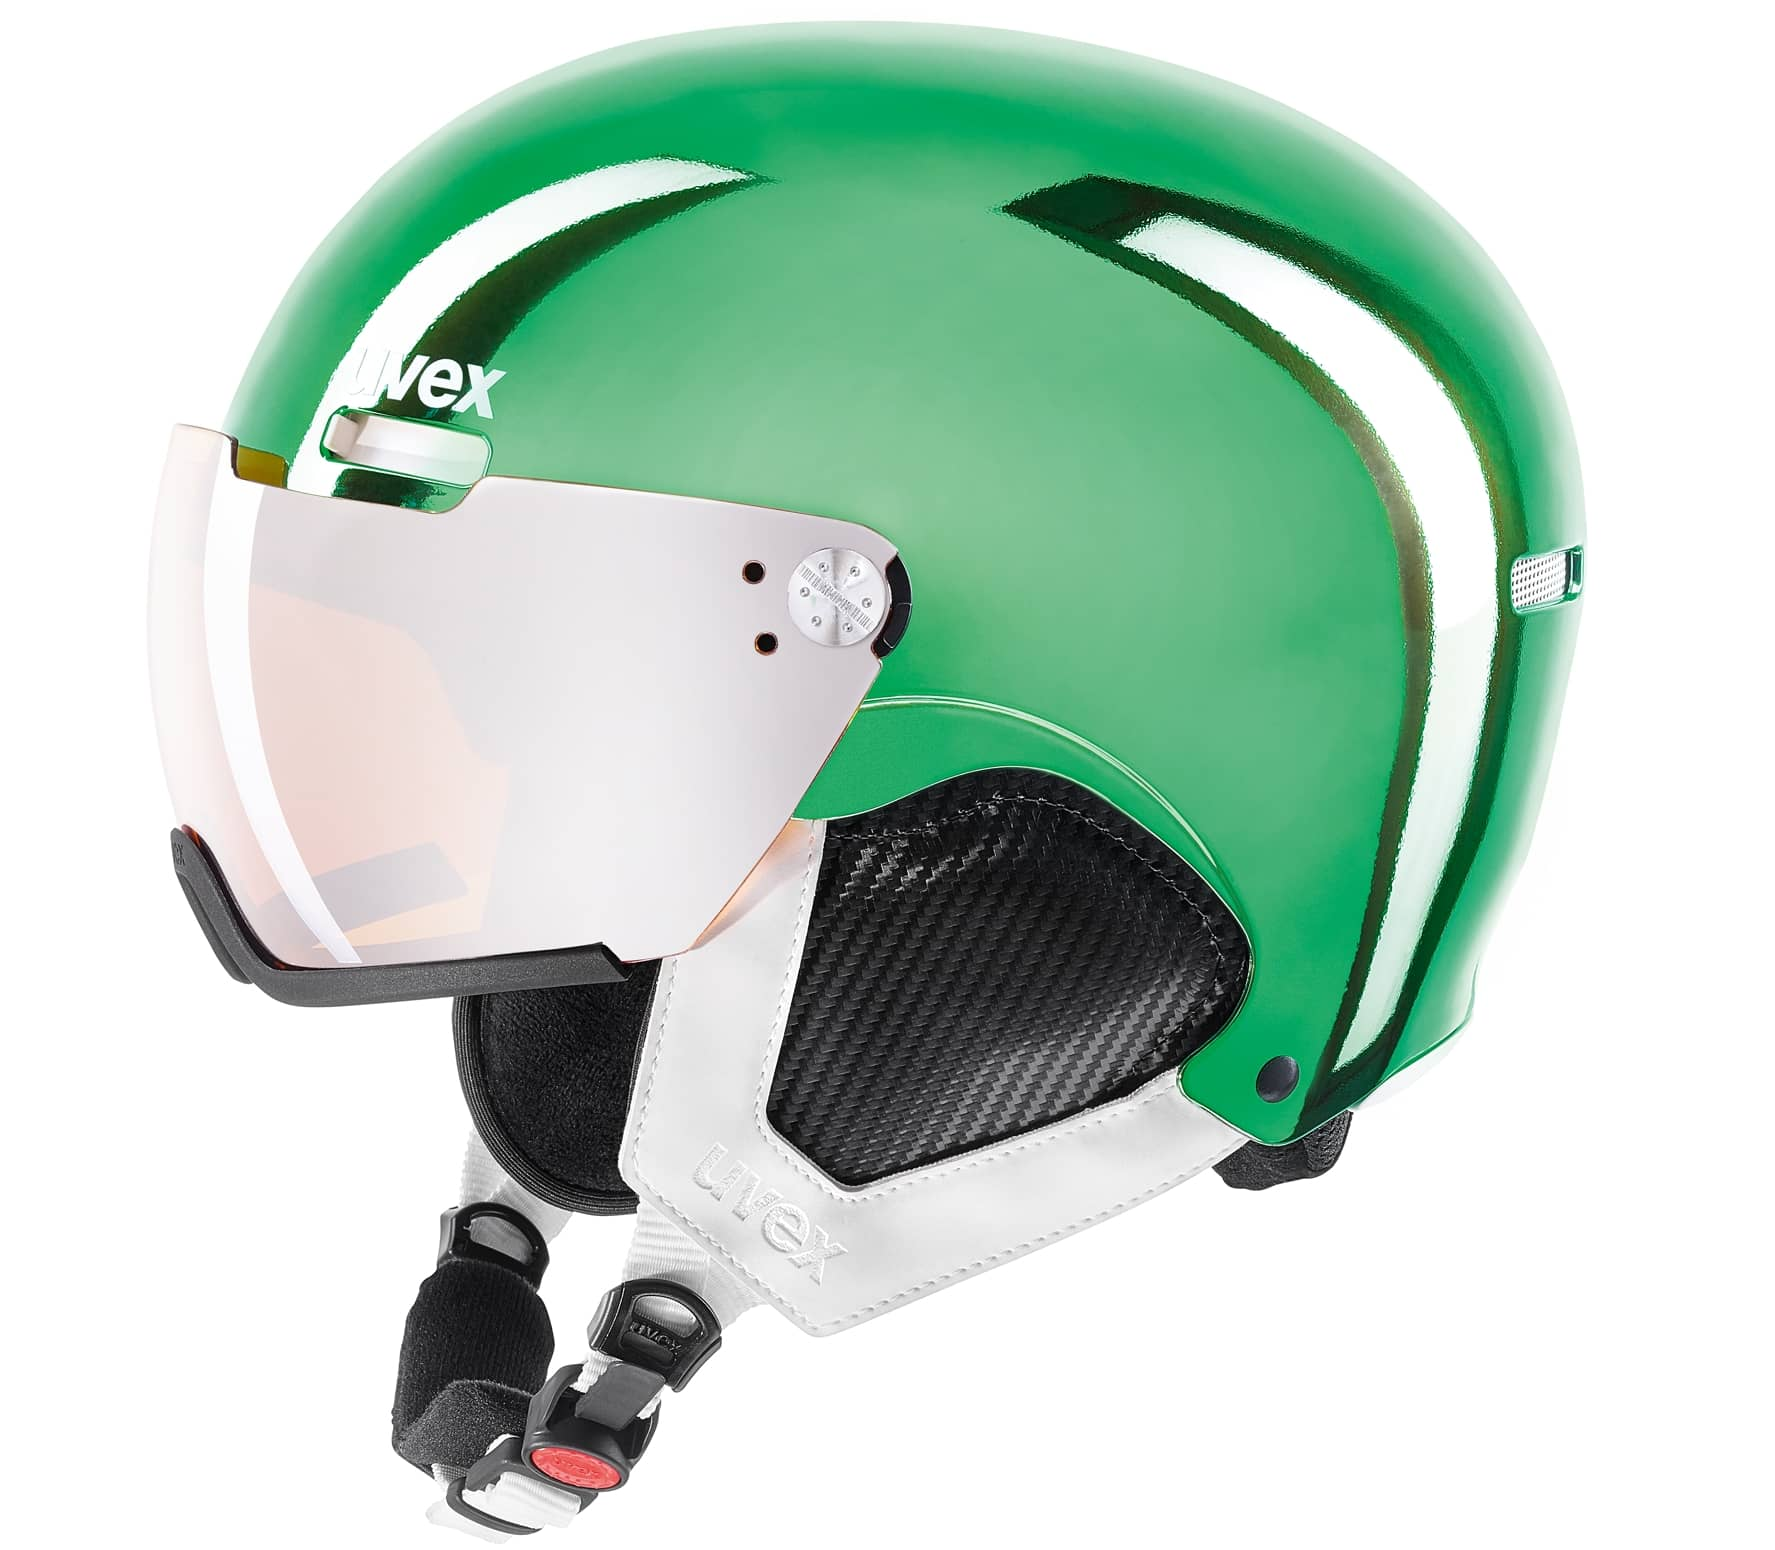 Uvex - Hlmt 500 Visor Chrome Ltd casque de ski (vert)